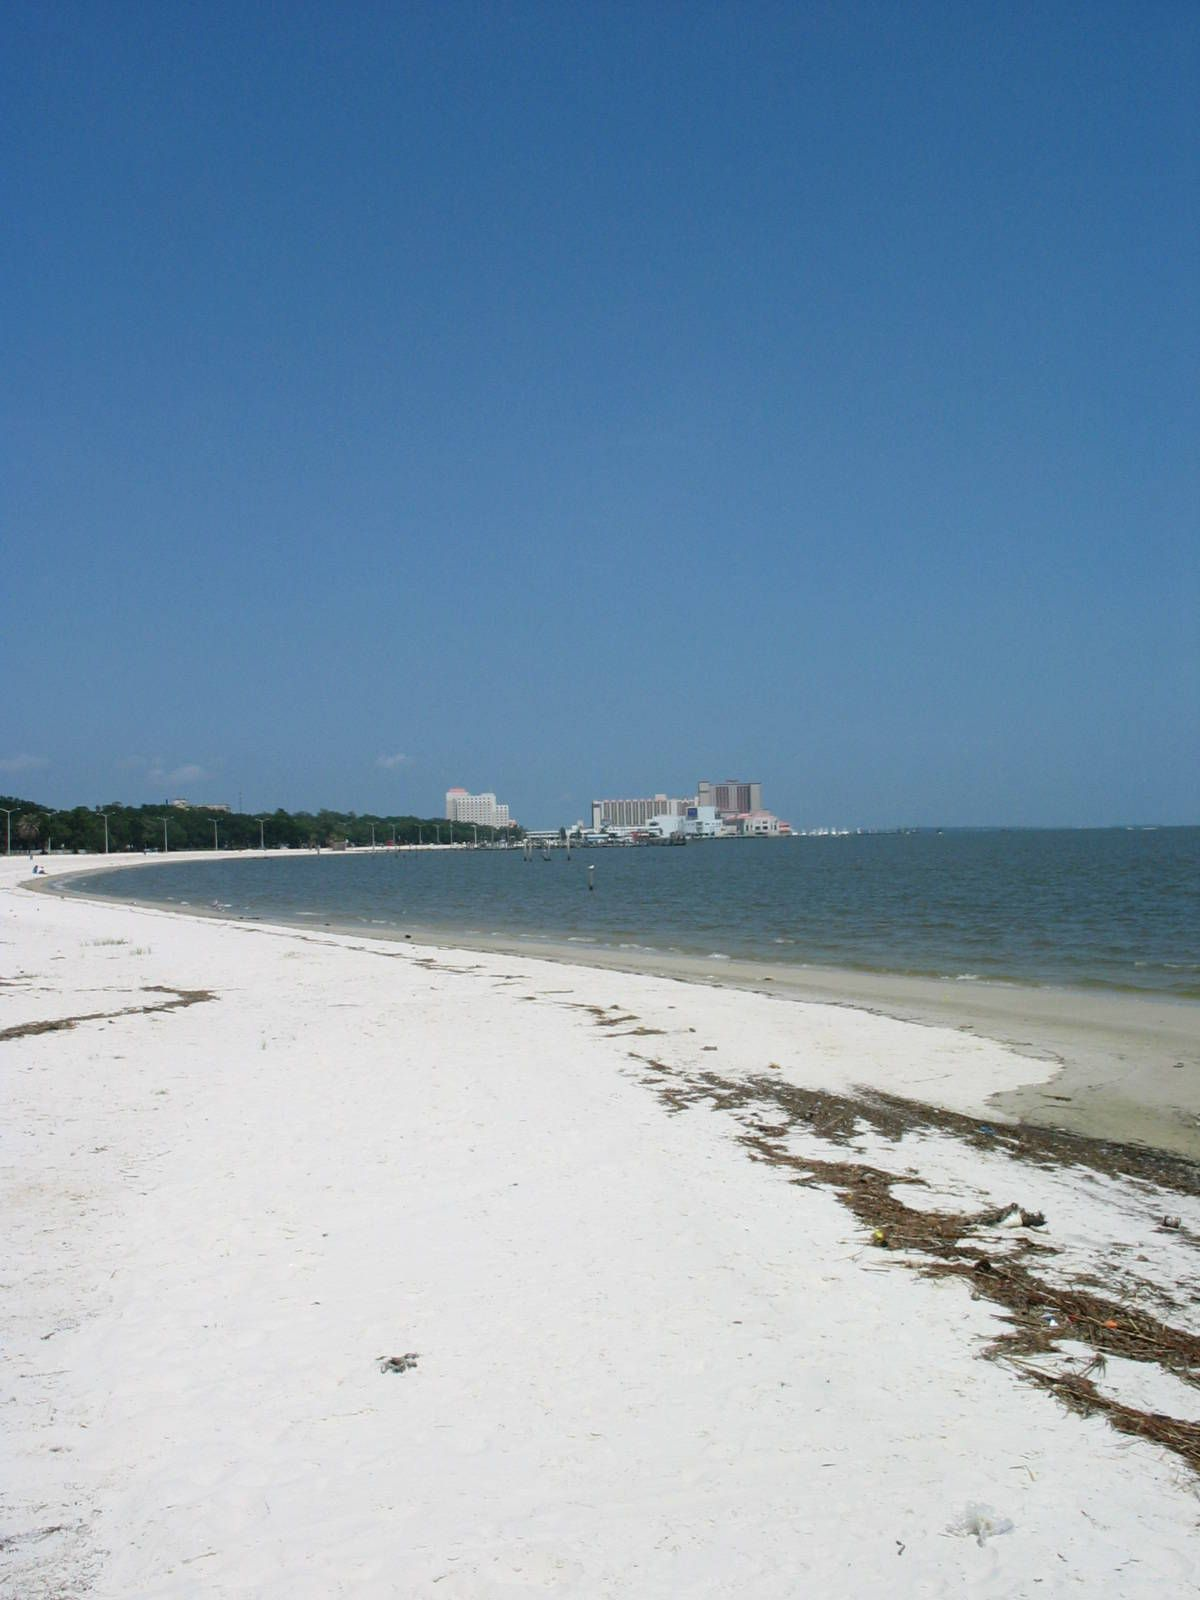 Spas Wellness Biloxi Beach Mississippi Vacation Places To Travel